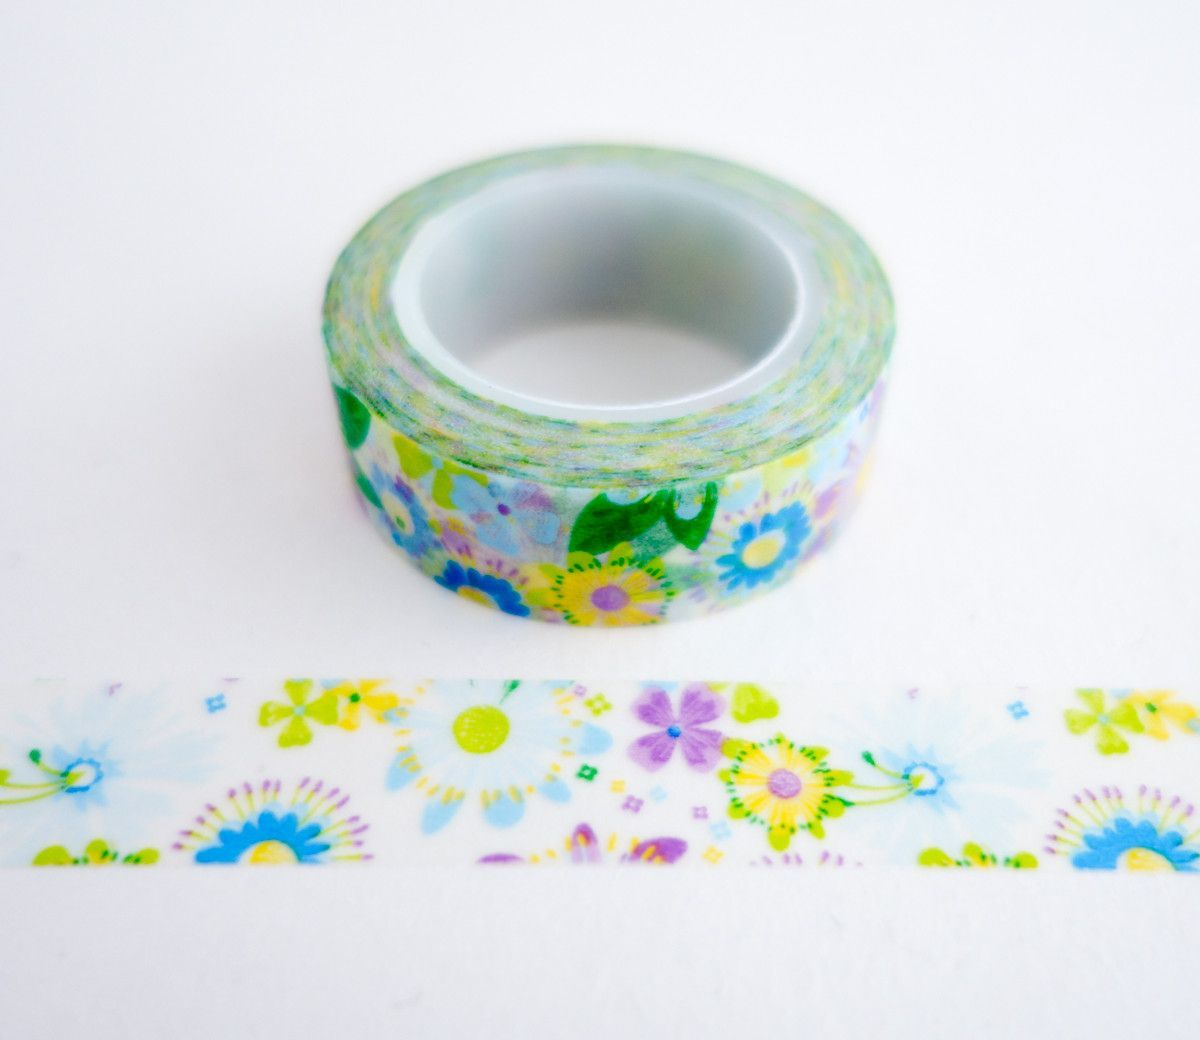 Single roll of washi masking tape with bright spring flowers pattern. Great for travel journals, scrapbooking, gift wrapping, decorating cards and envelopes and more! Add a little dash of cuteness to